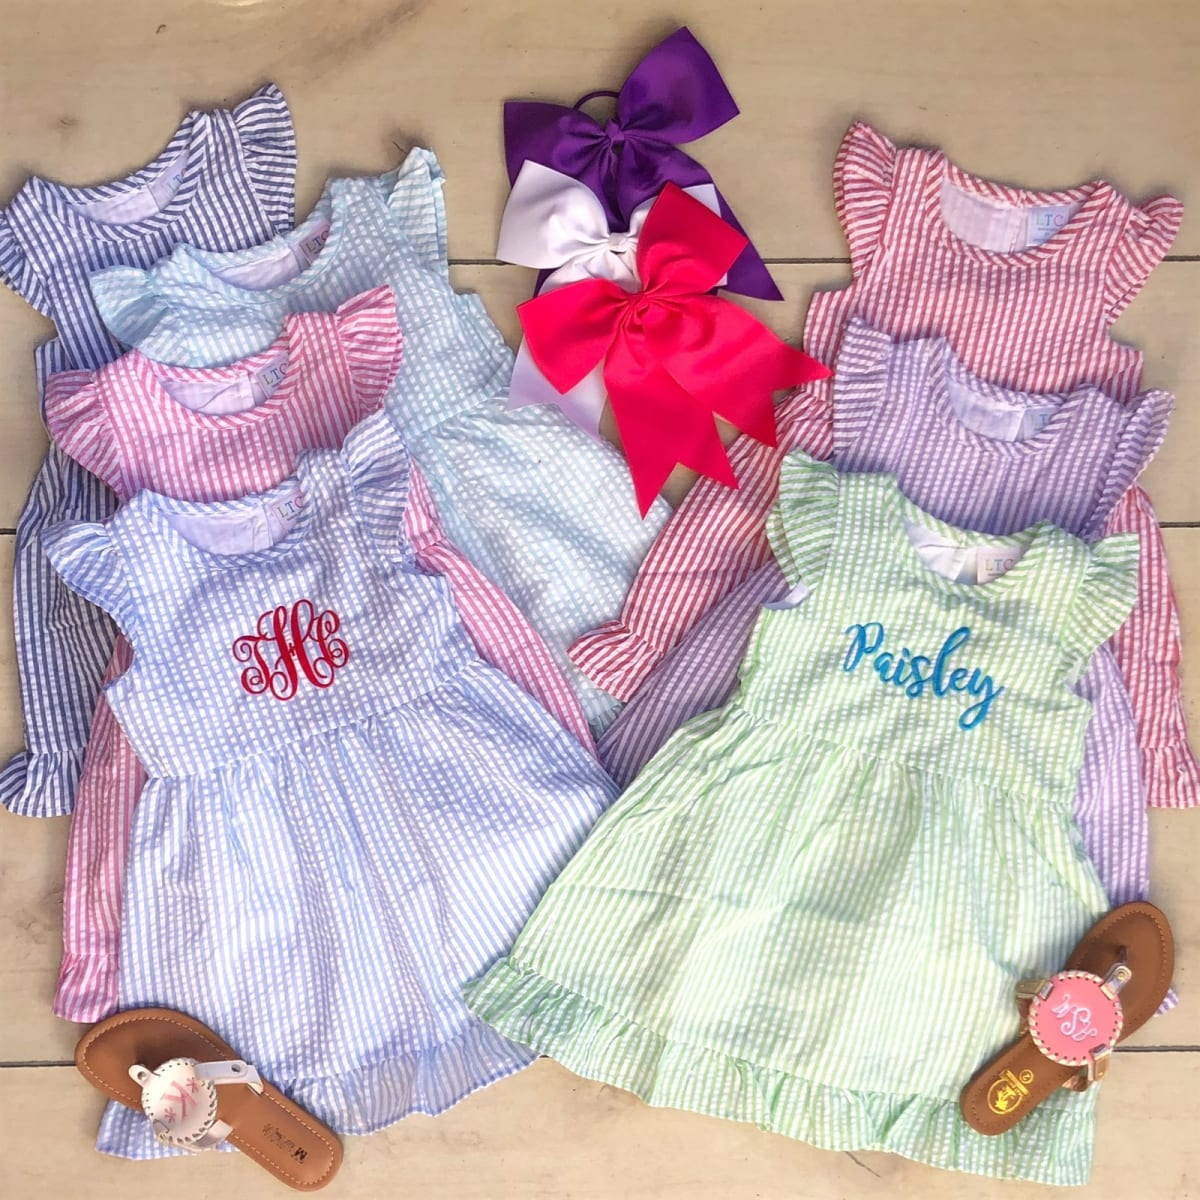 Personalized Girls Seersucker Dresses